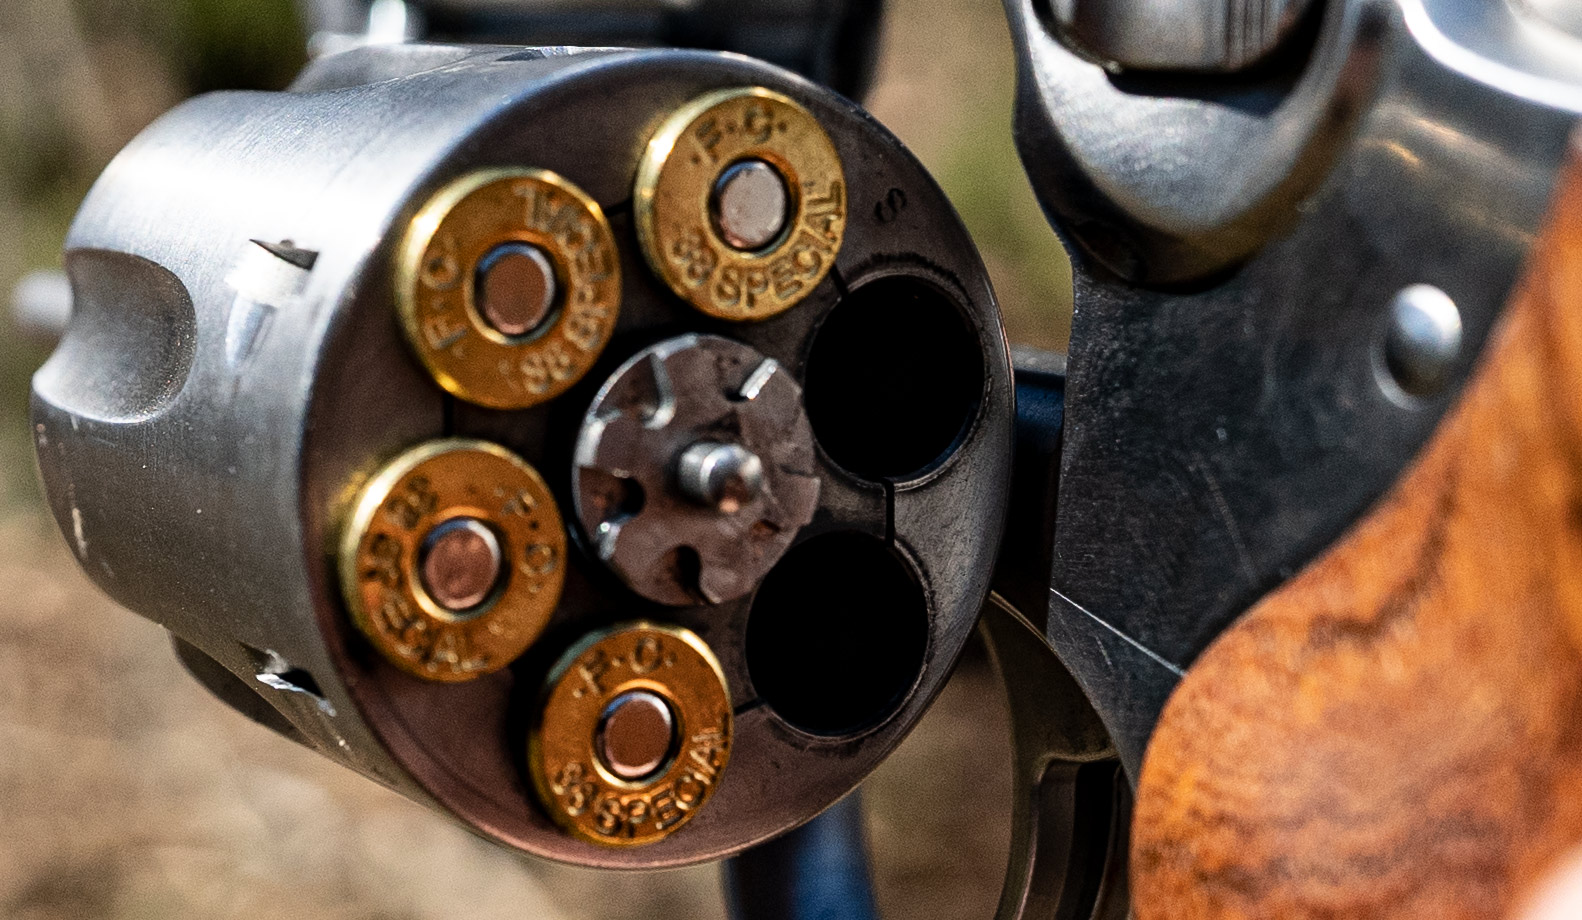 38 spl ammo loaded into the cylinder of a Ruger revolver